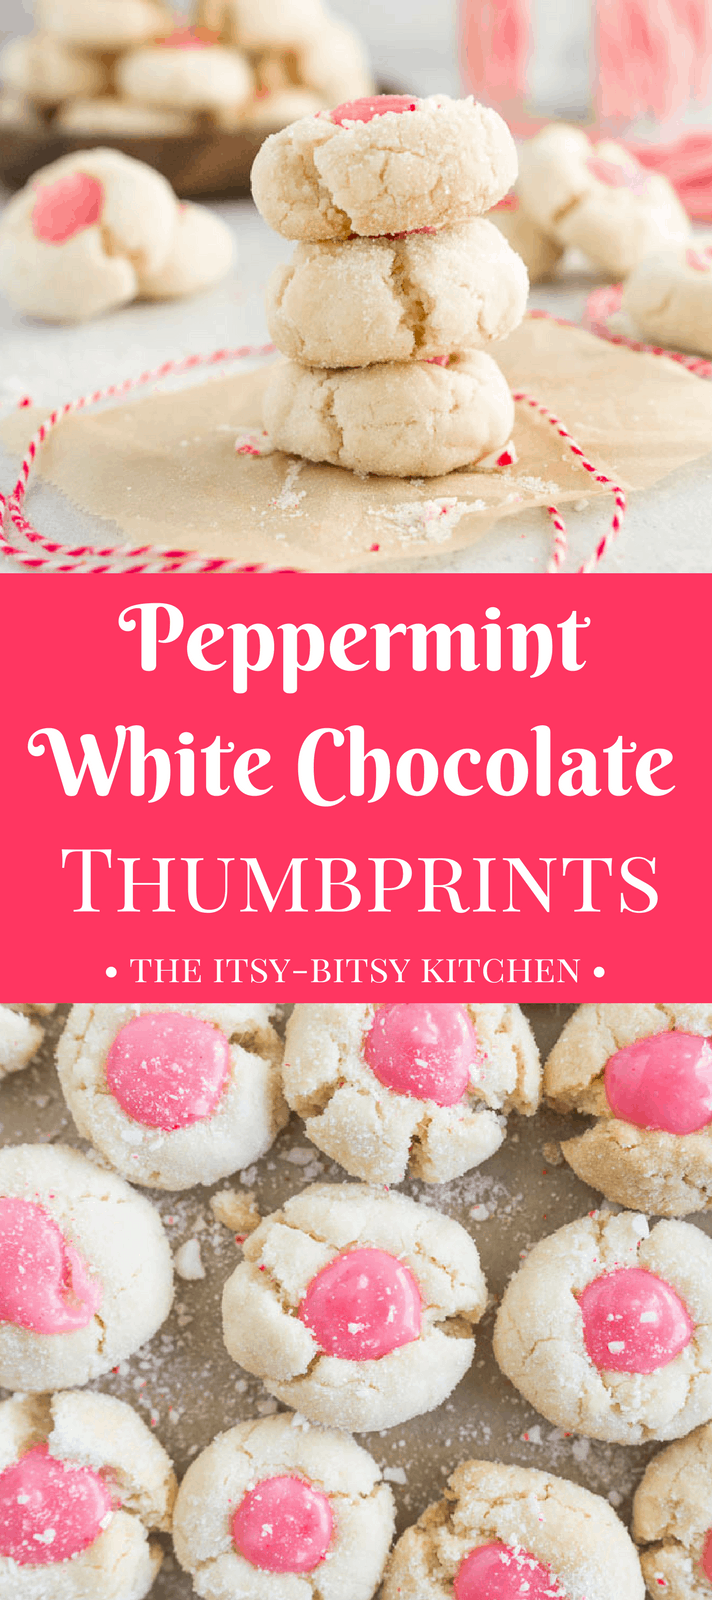 White chocolate peppermint thumbprint cookies include a crunchy and crumbly shortbread base and a buttery white chocolate peppermint filling made with candy canes. These will become a new favorite on your Christmas cookie tray!  #Christmascookies #whitechocolate #peppermint